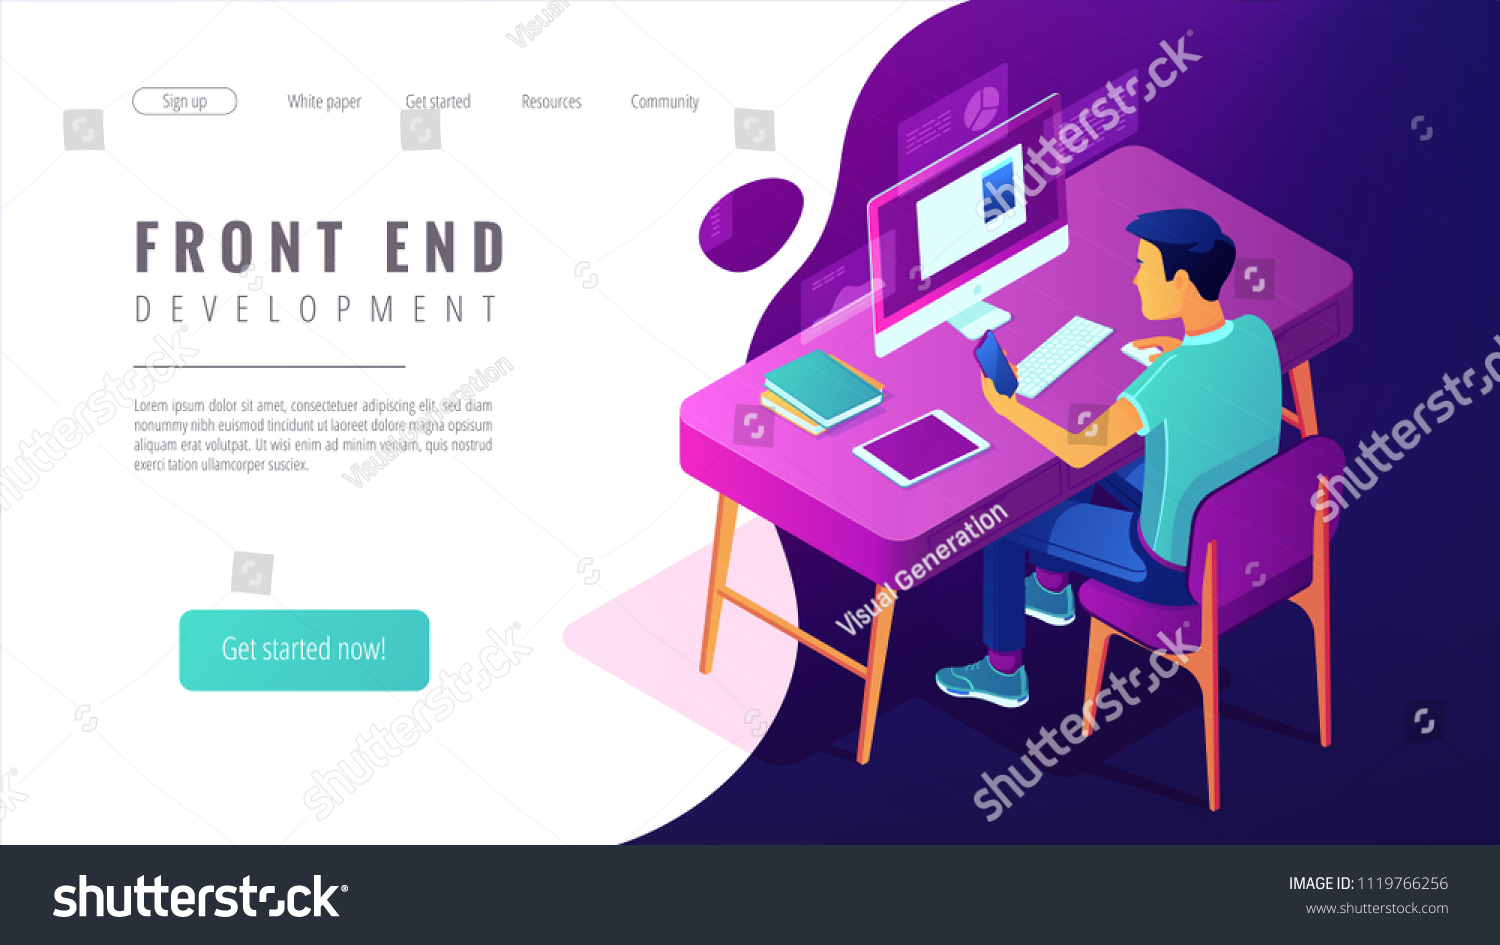 2fa882784f8c Isometric front end development landing page concept. Front end developer  of website and app interfaces